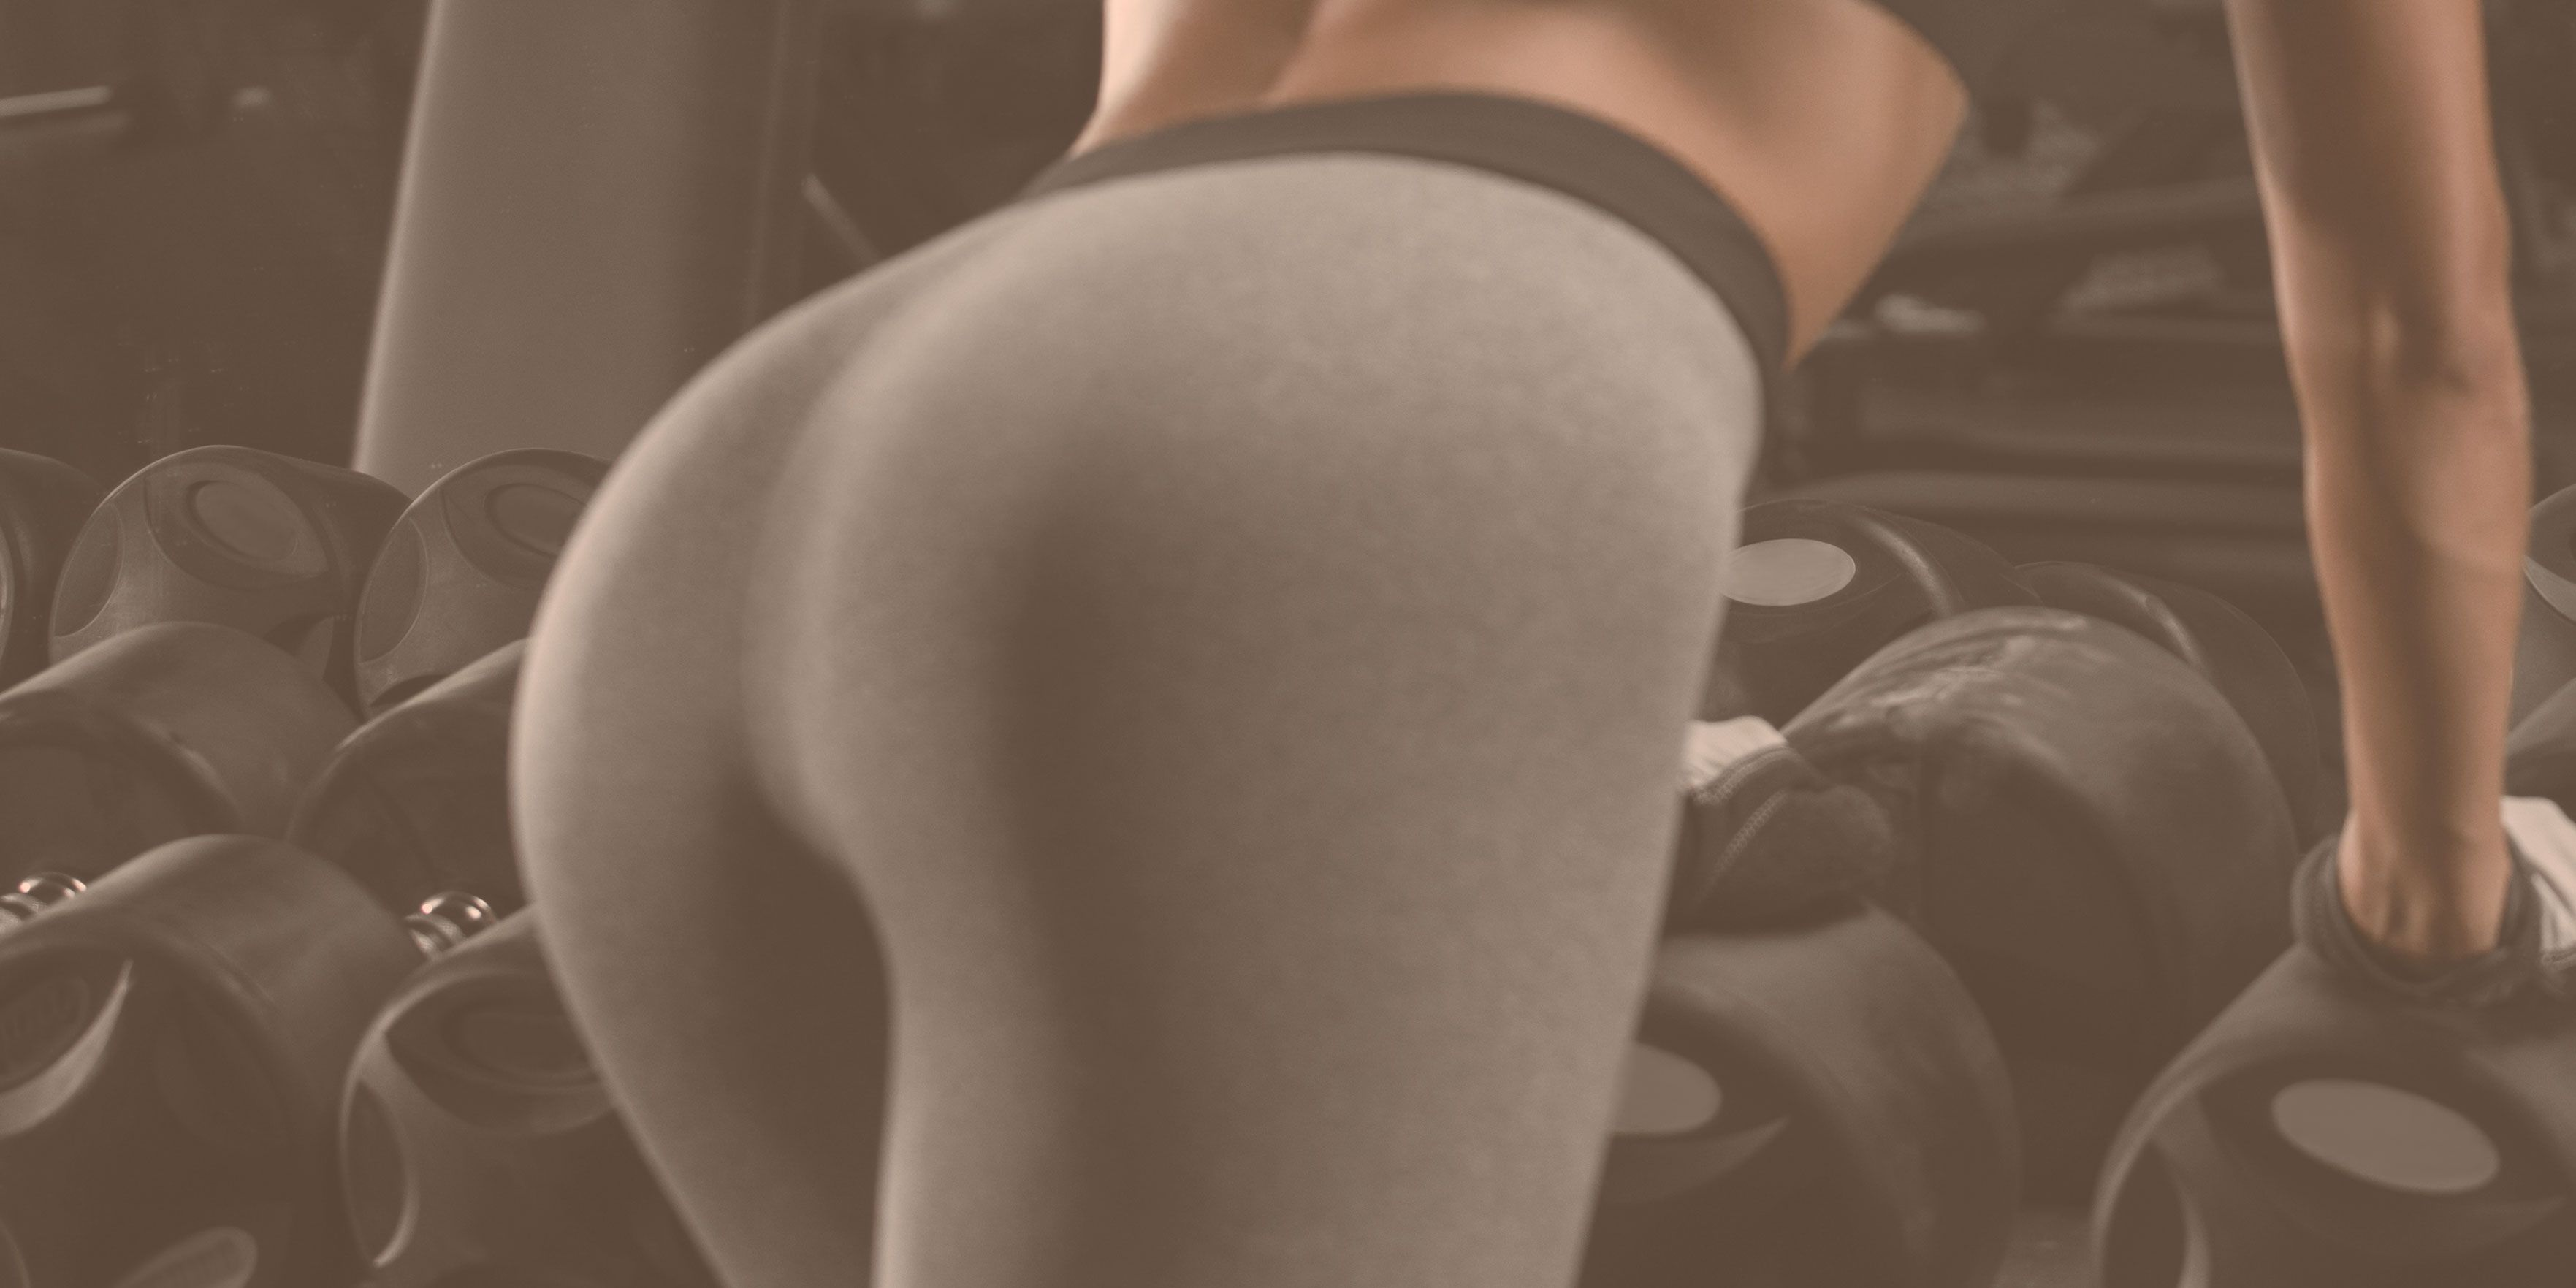 Lucie ass traffic porn archive